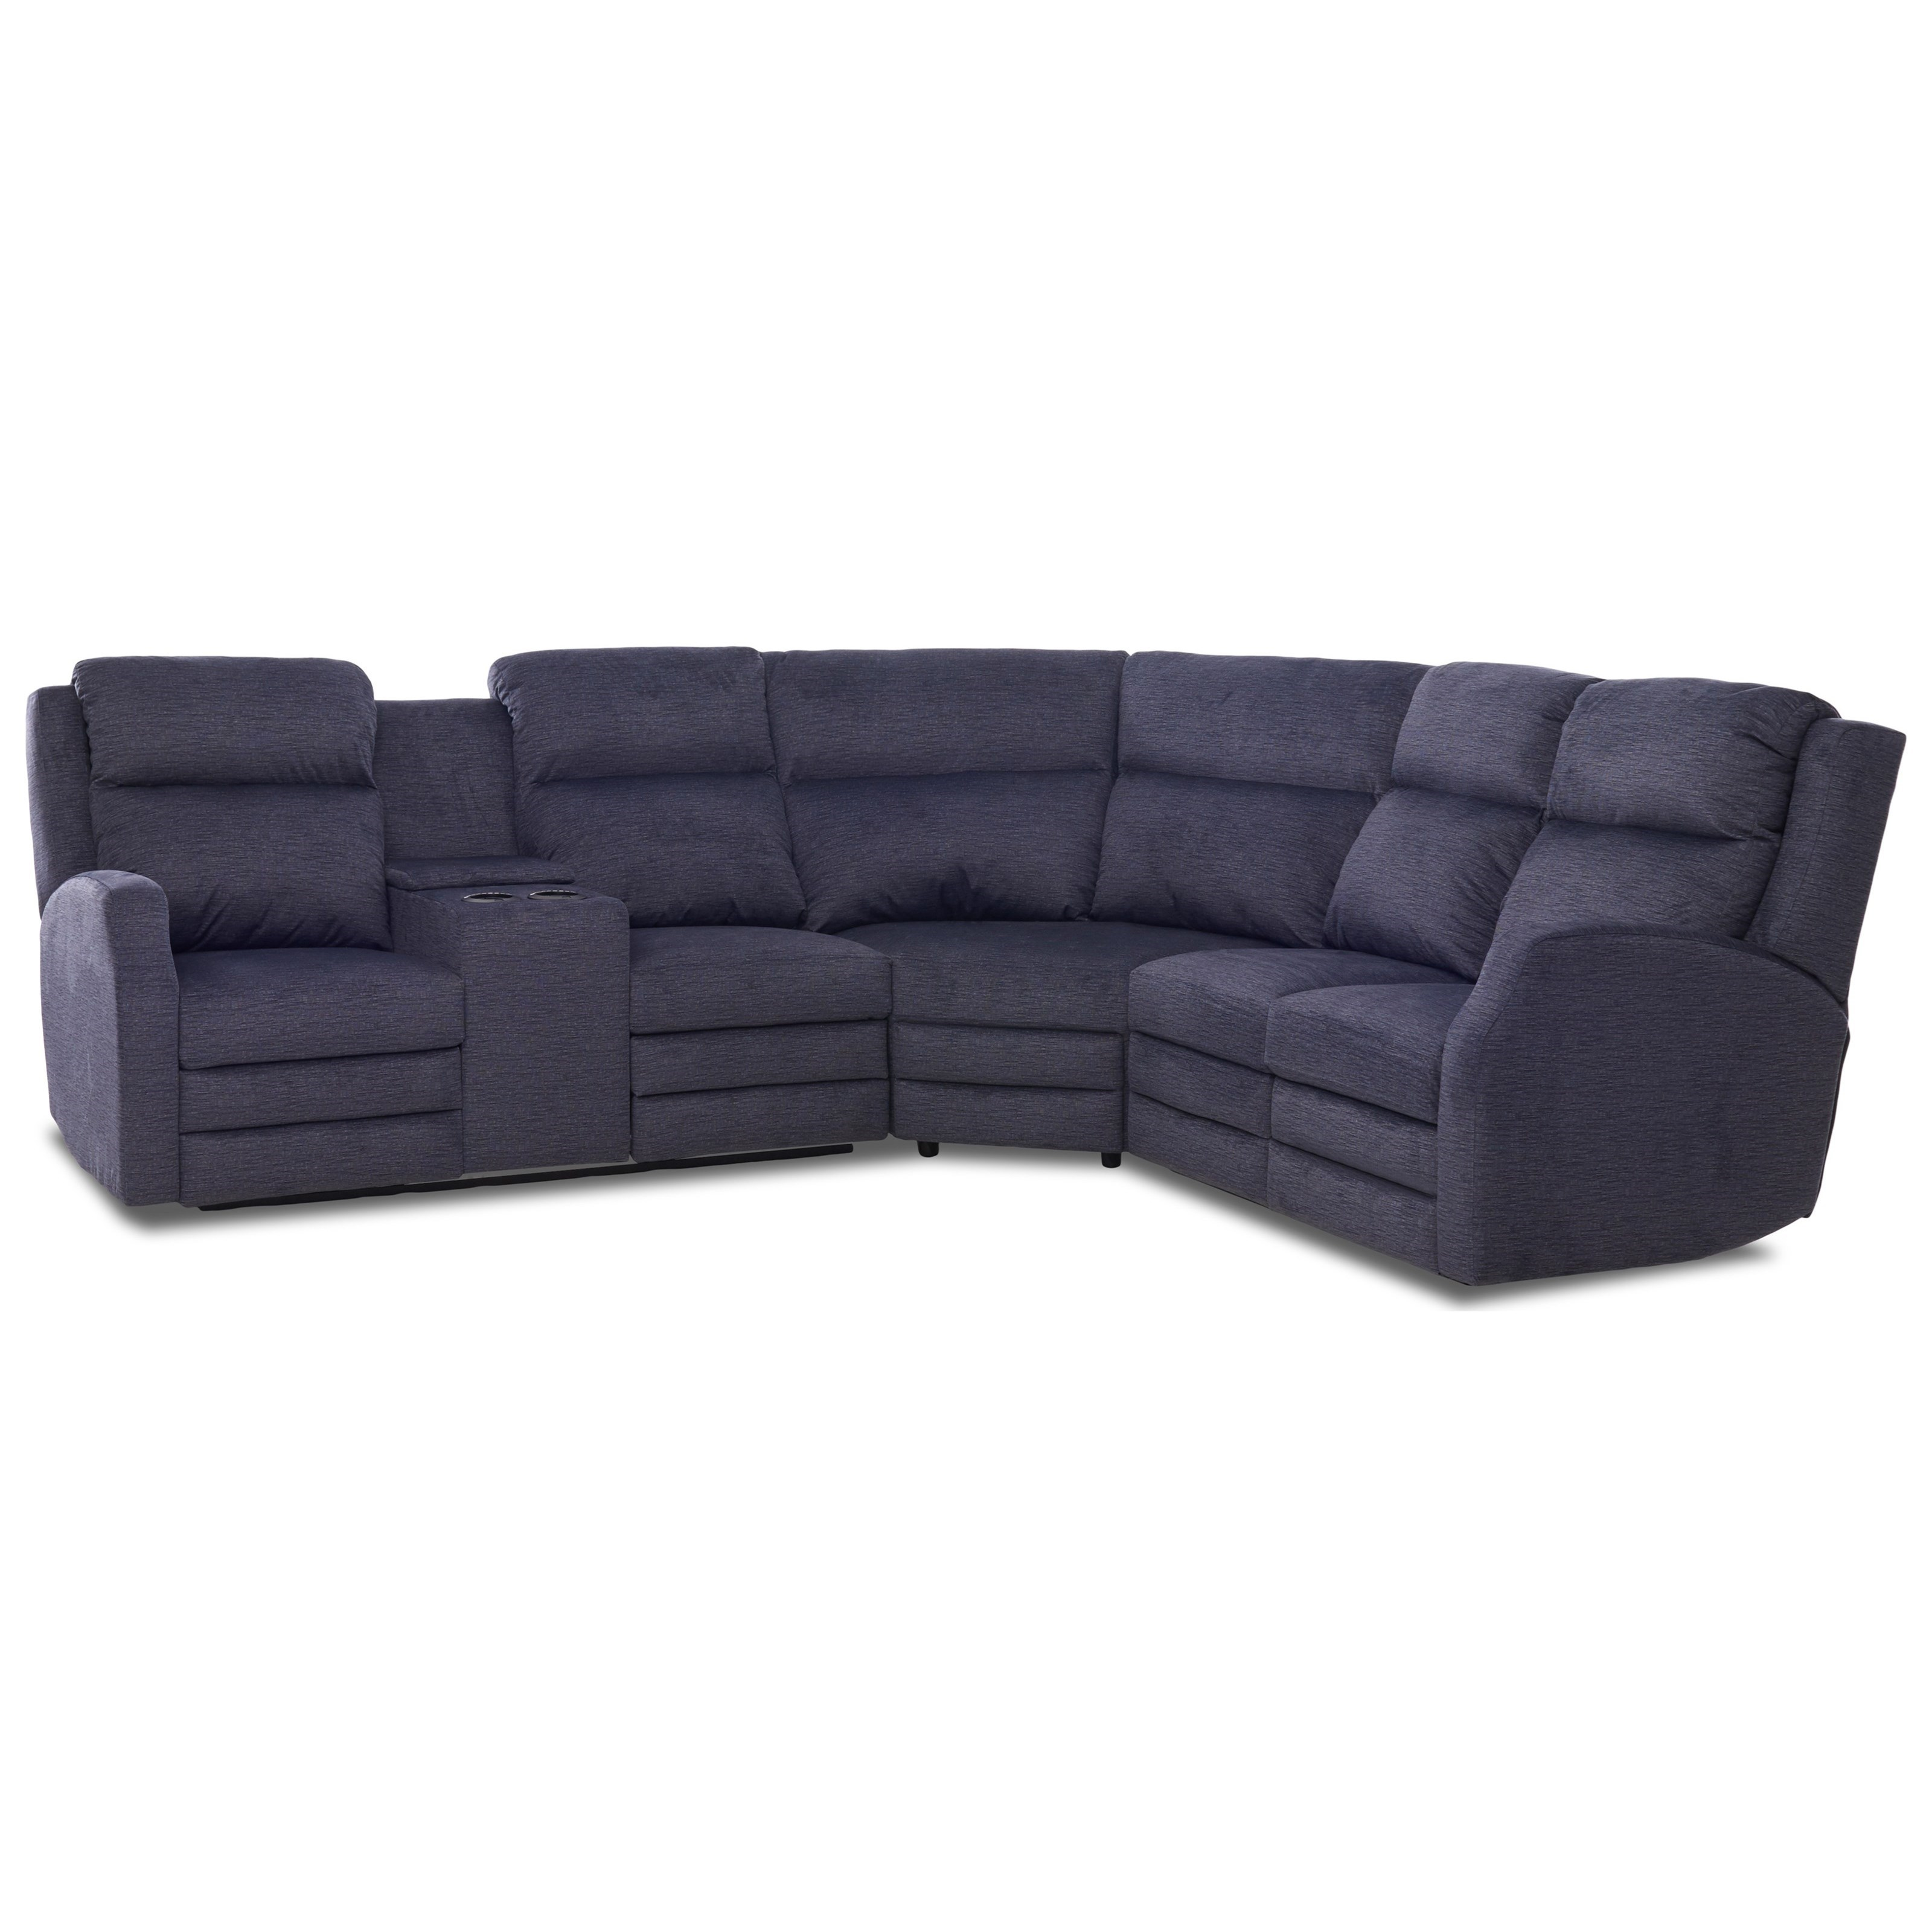 Kamiah 4 Seat Reclining Sectional Sofa by Klaussner at Northeast Factory Direct